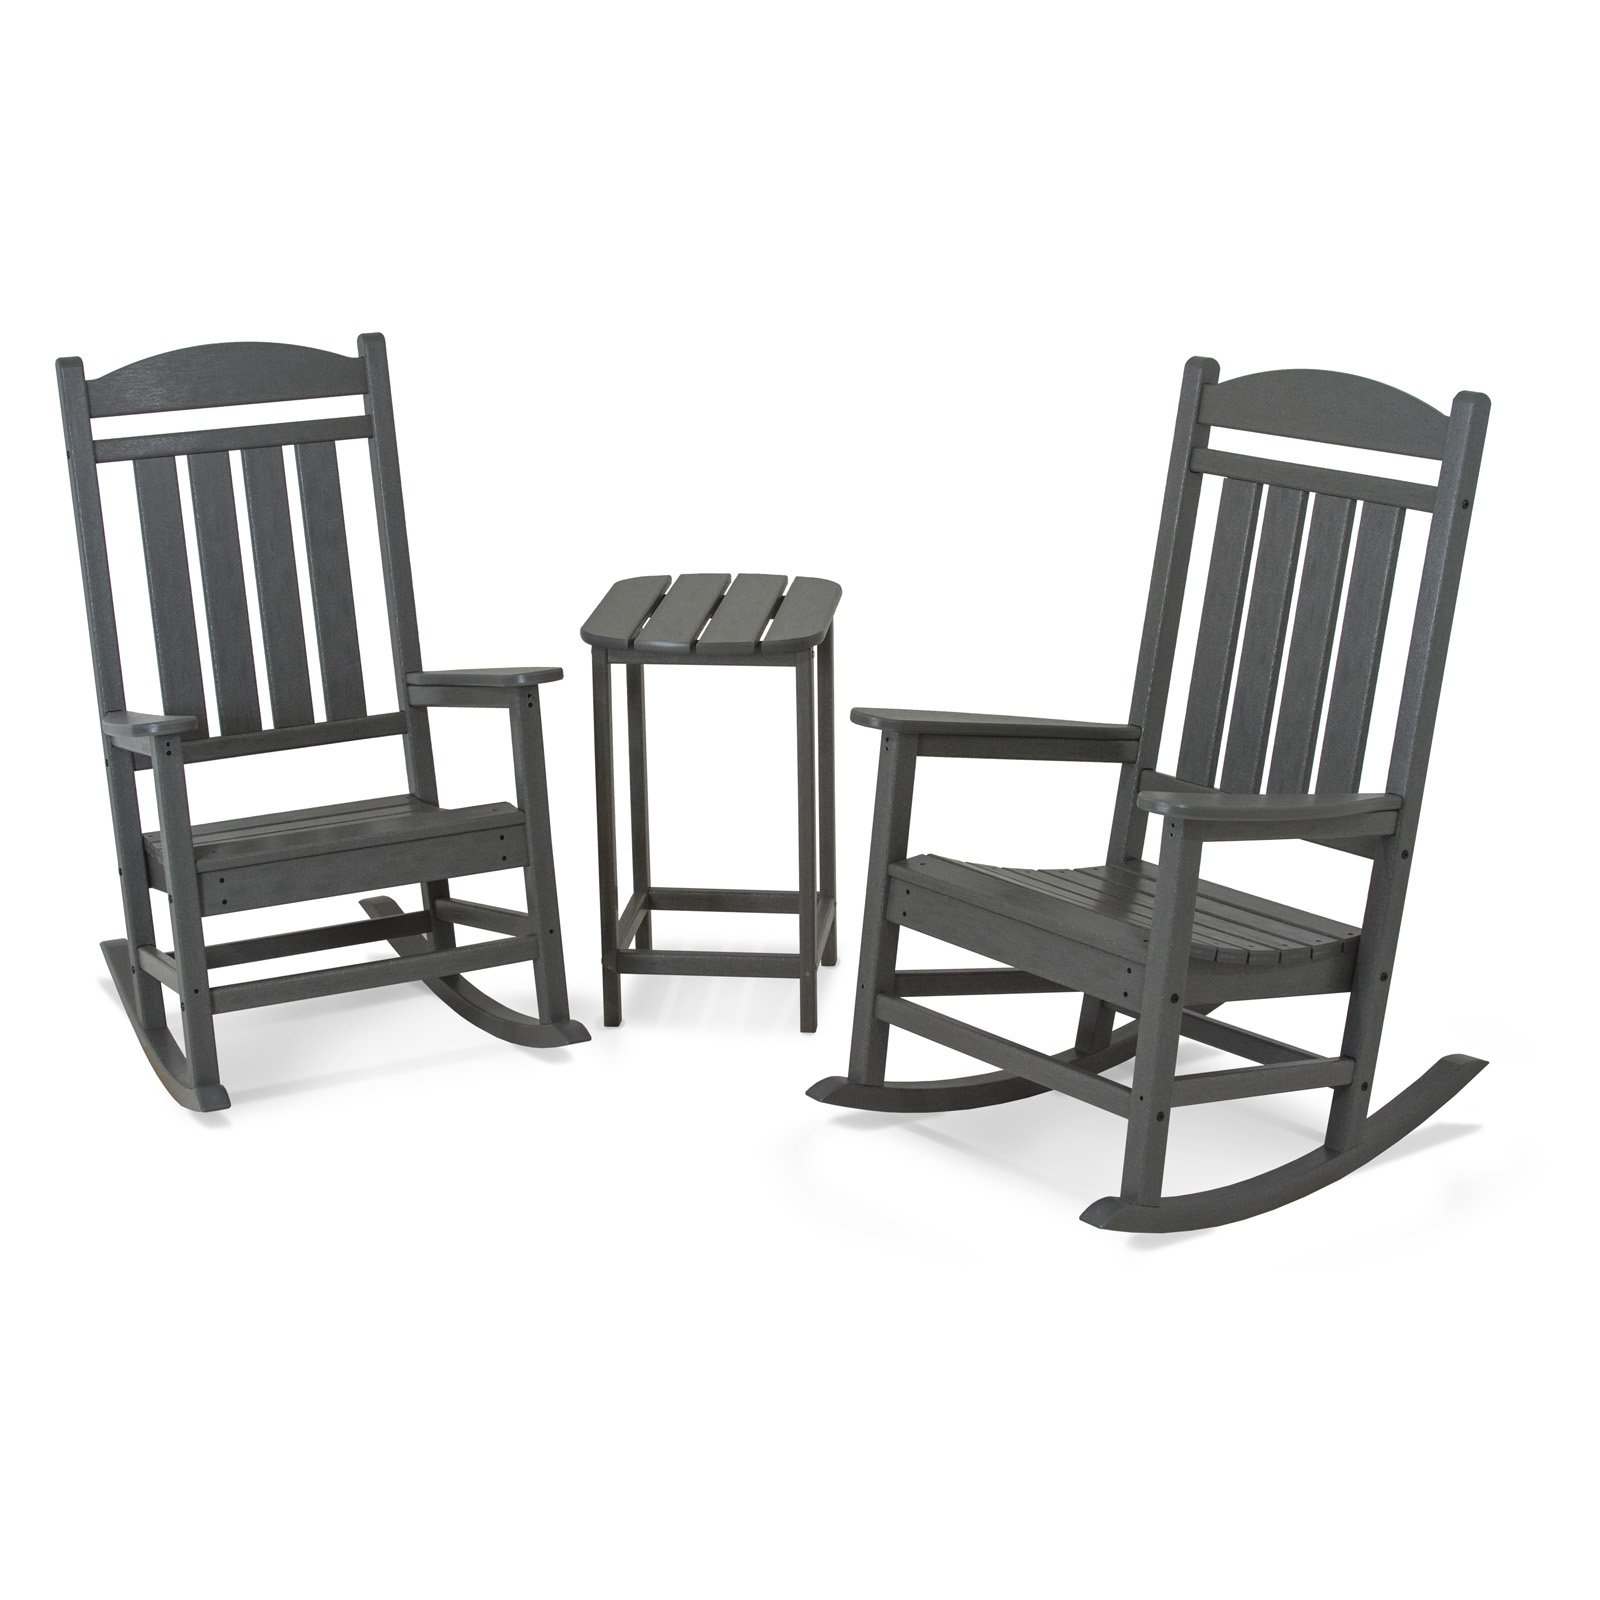 POLYWOOD® Presidential 3 pc. Recycled Plastic Rocker Set with Tall Side Table